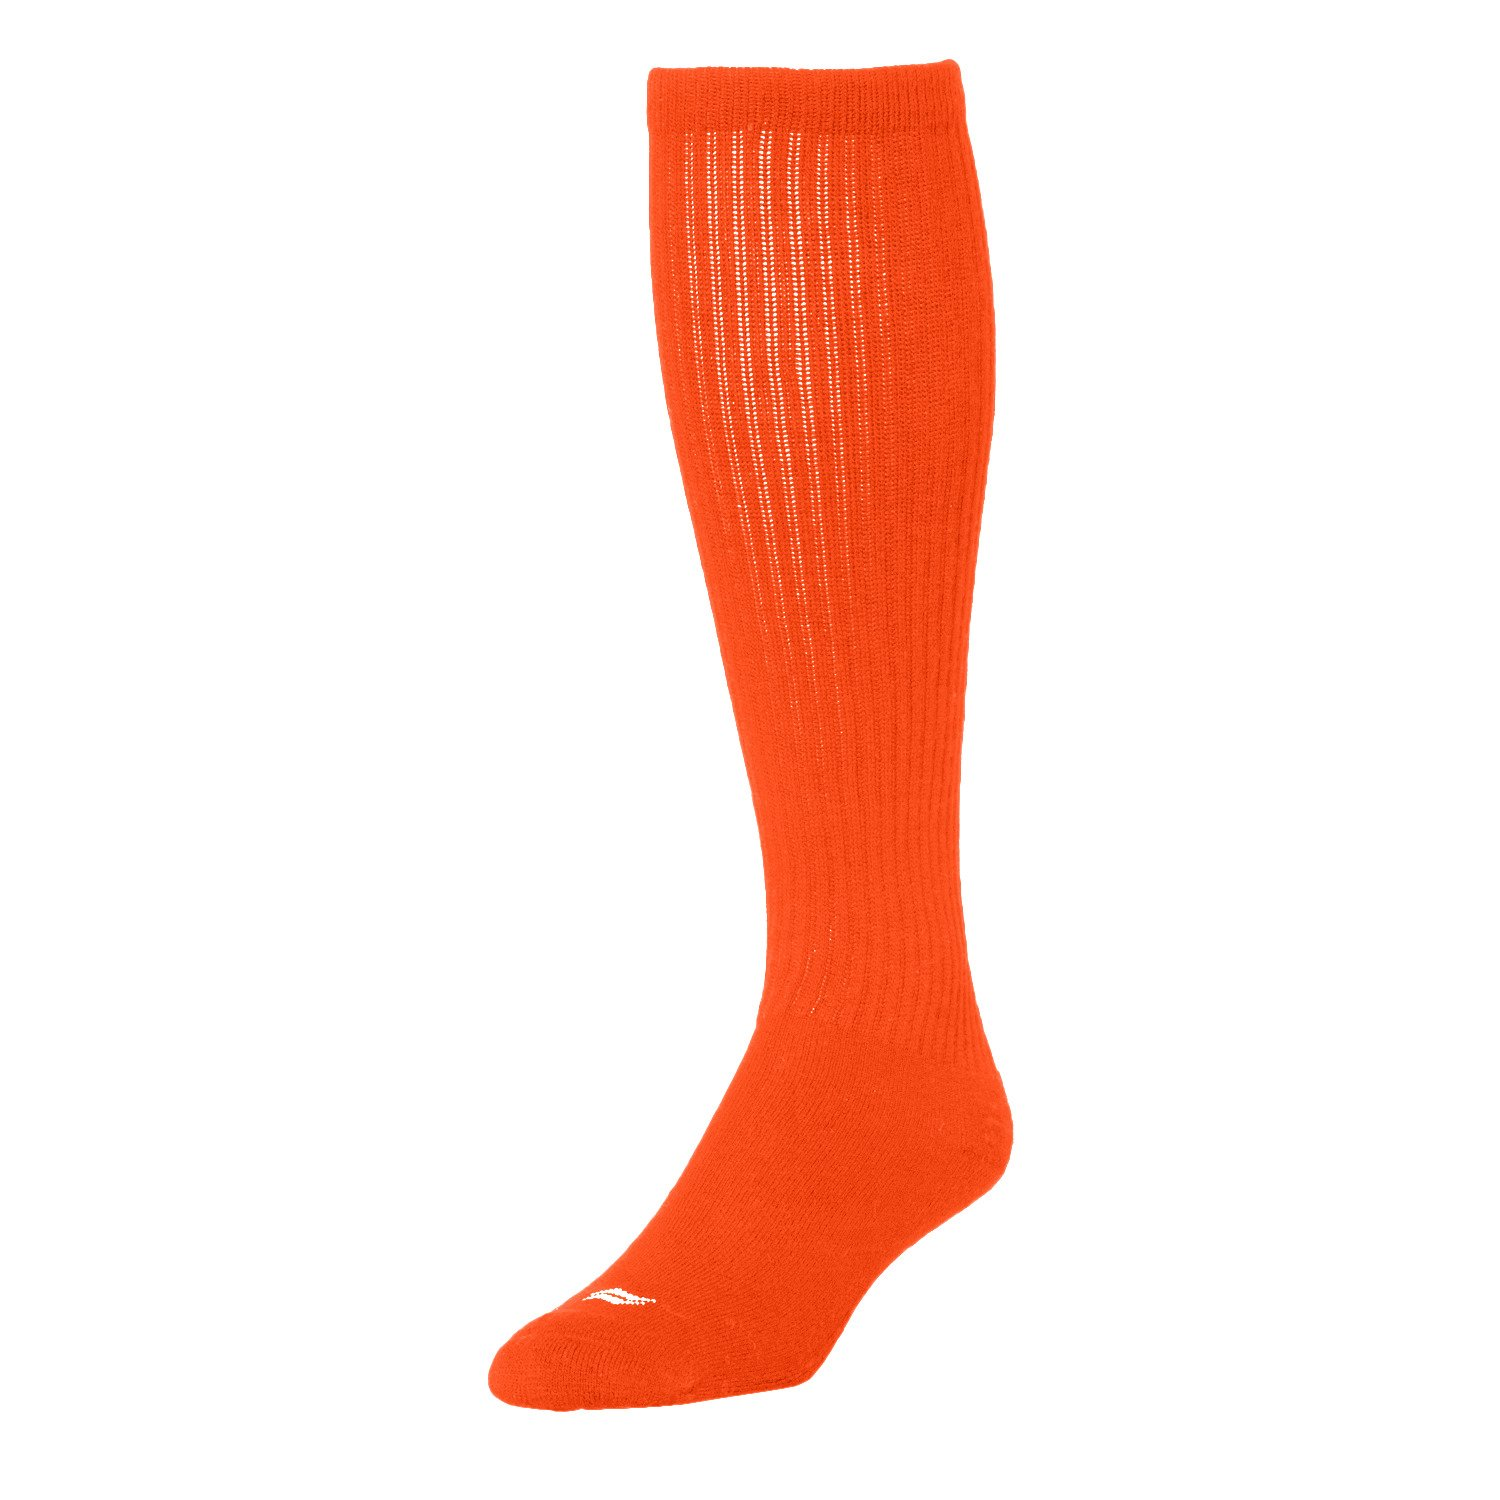 a5082da9a Display product reviews for Sof Sole Soccer Kids' Performance Socks X-Small  2 Pack